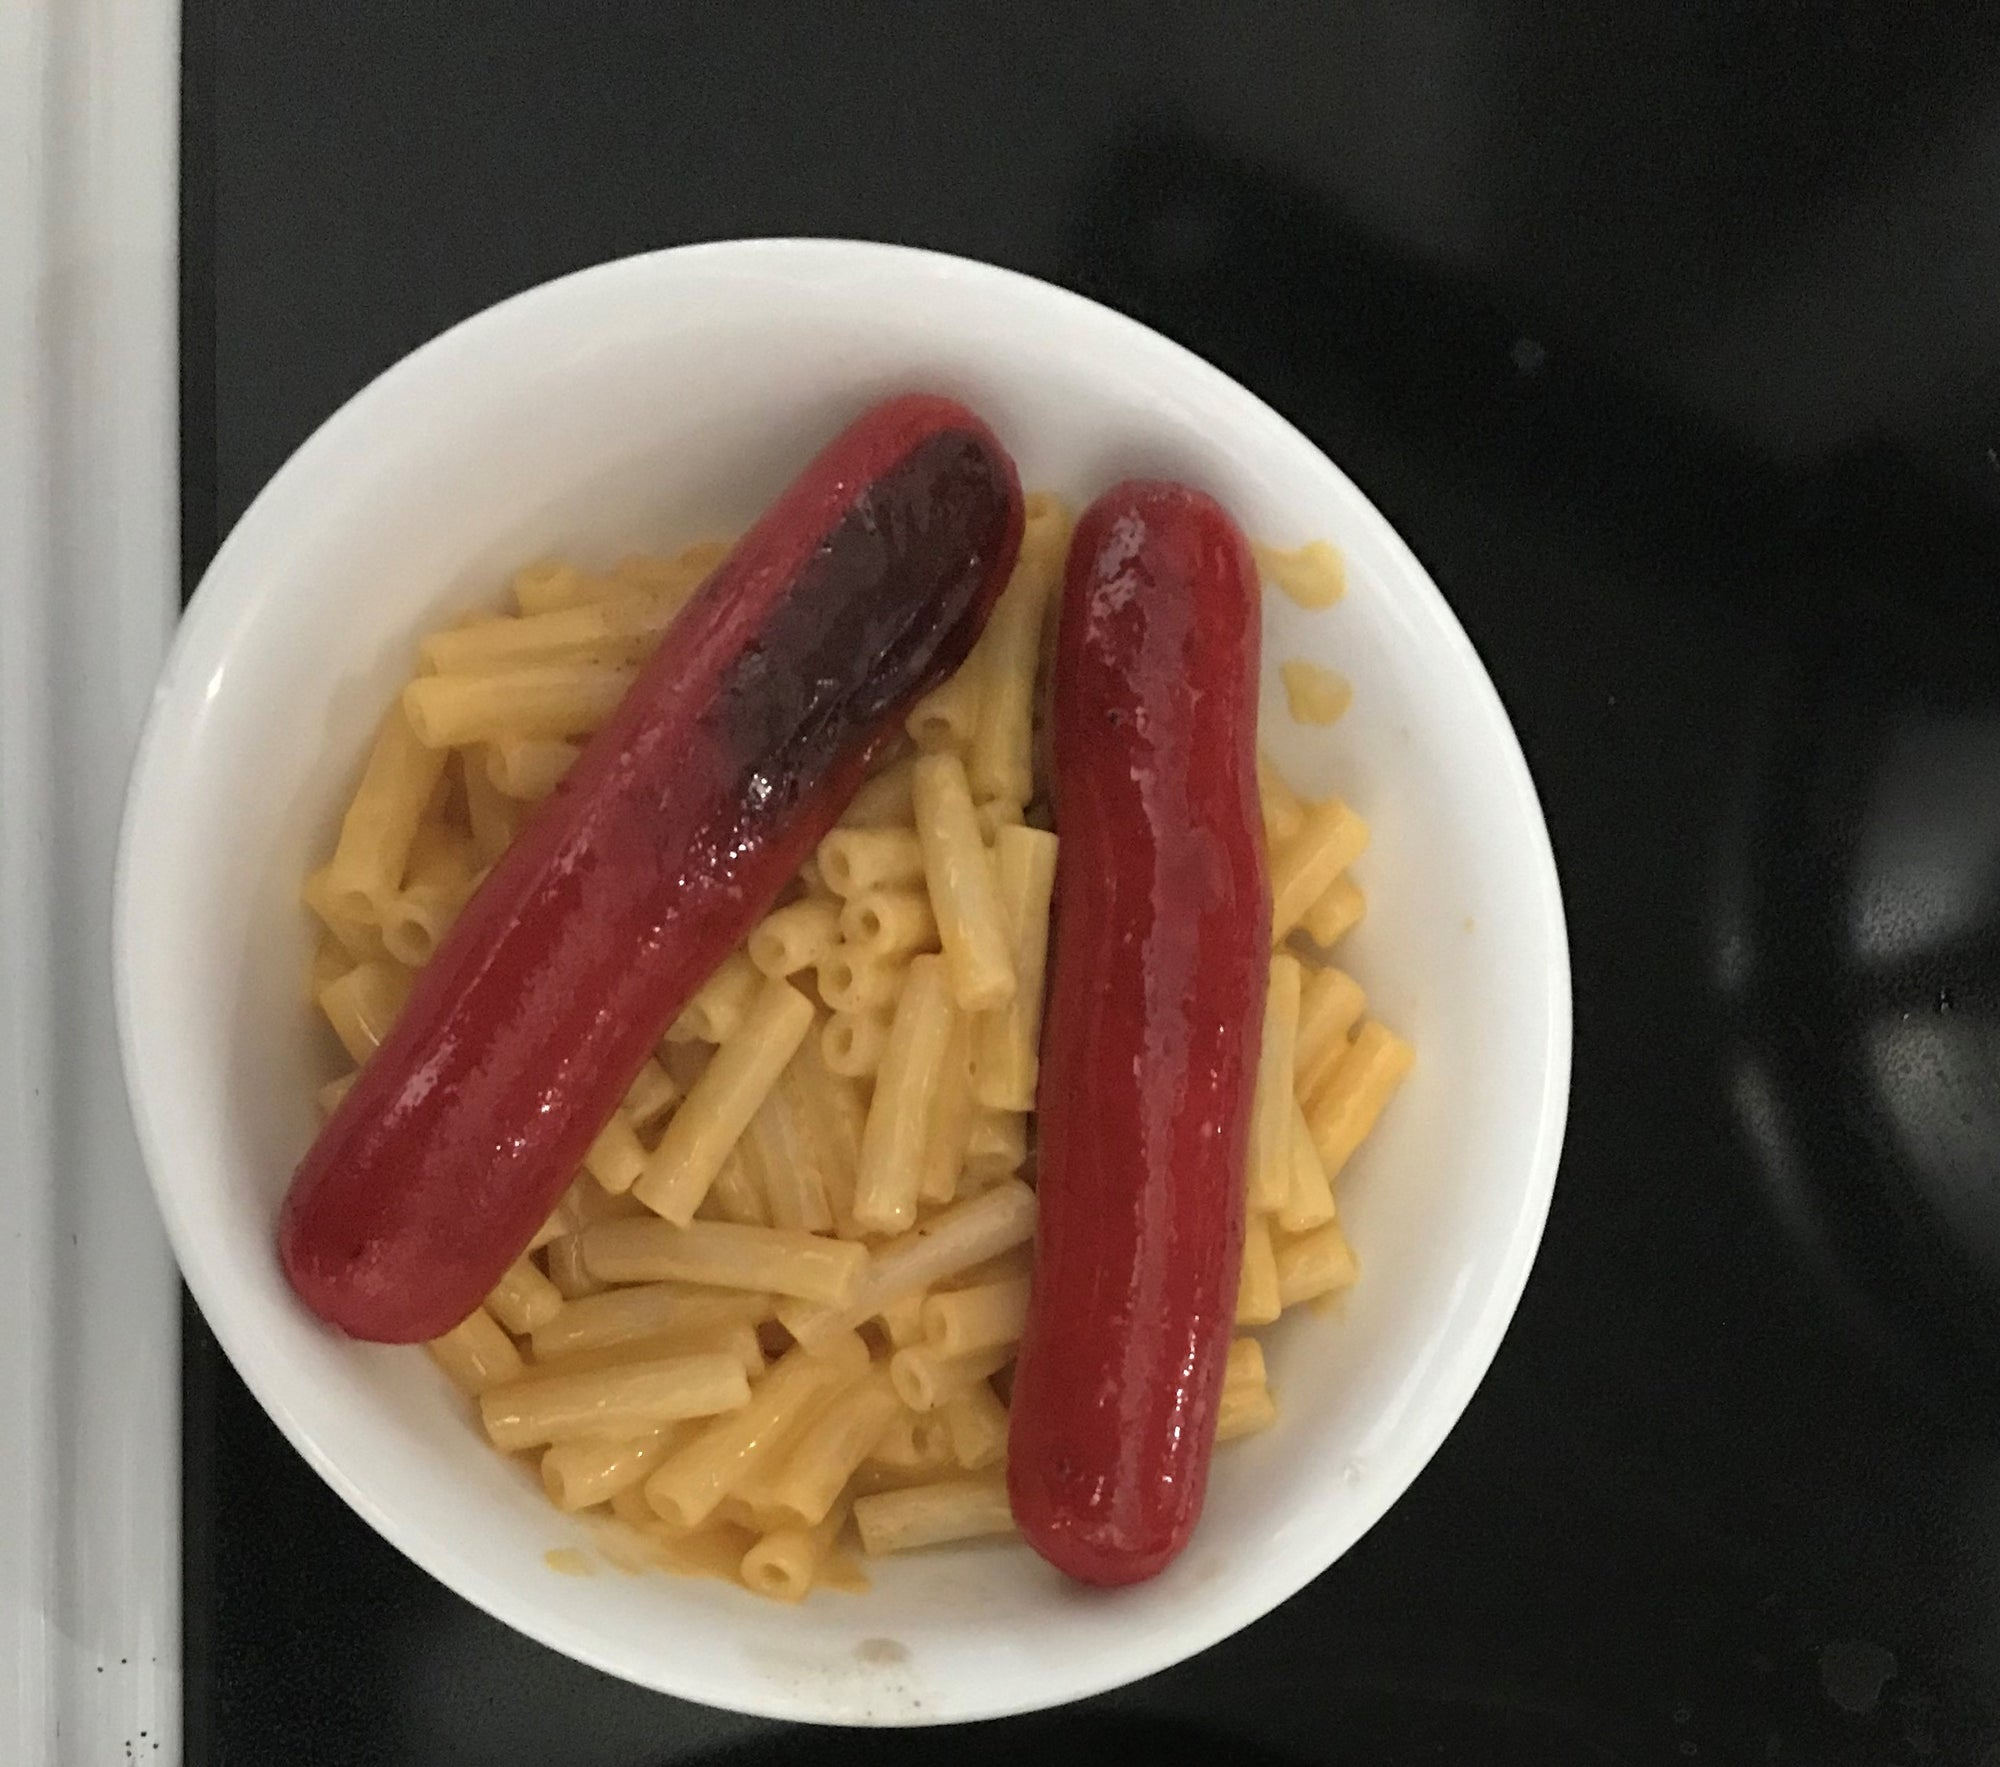 Bright Leaf Hot Dogs with Mac n Cheese Meal